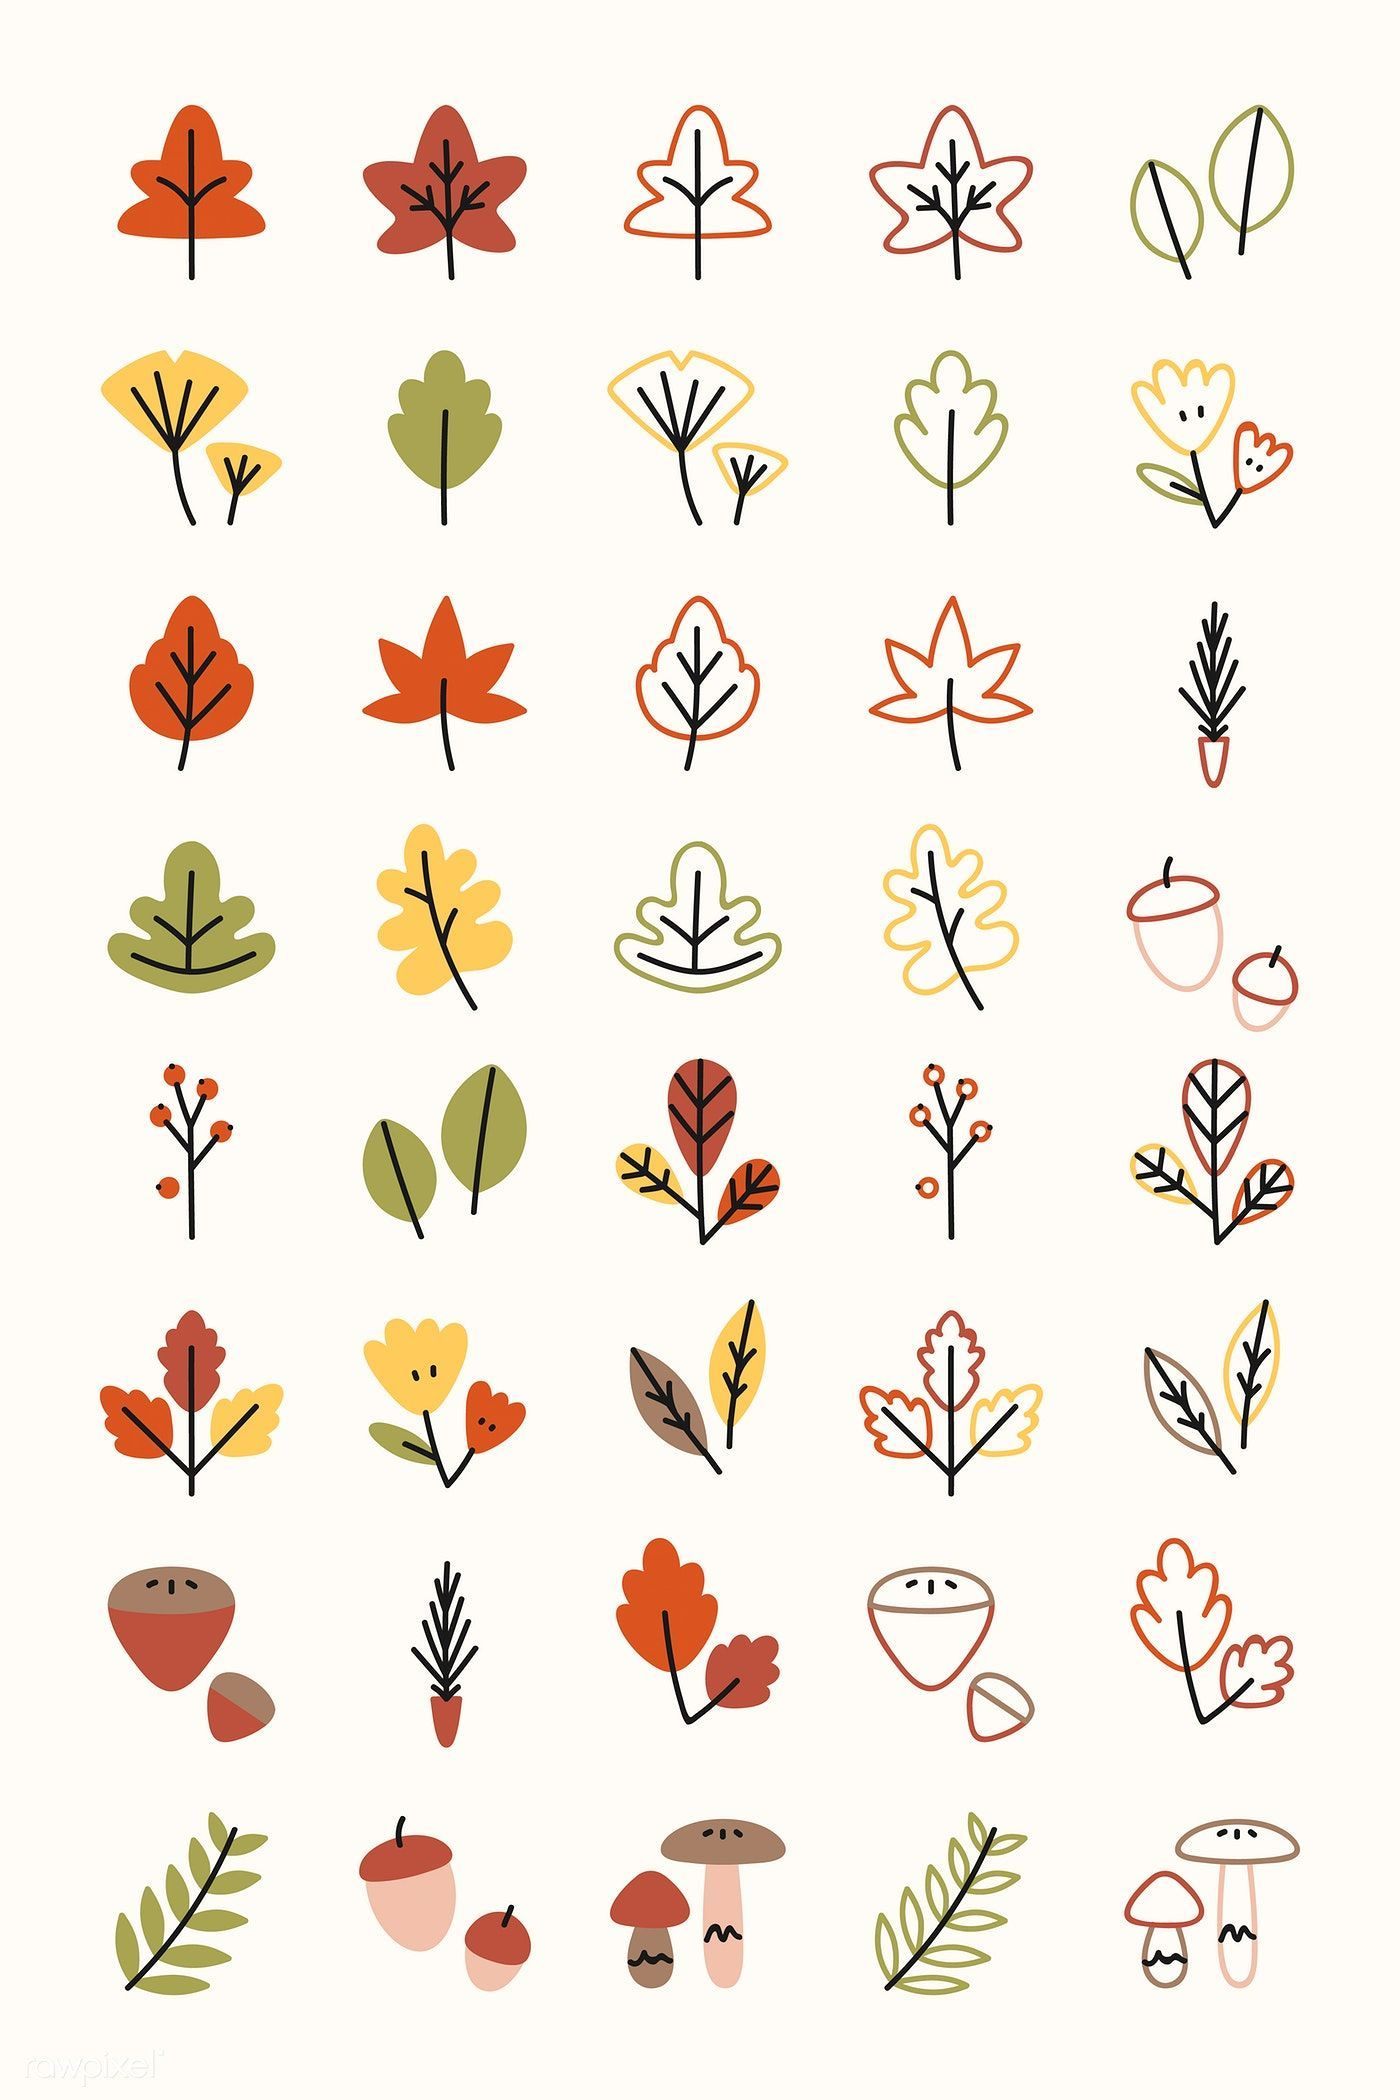 Colorful leaves drawing collection vector free image by